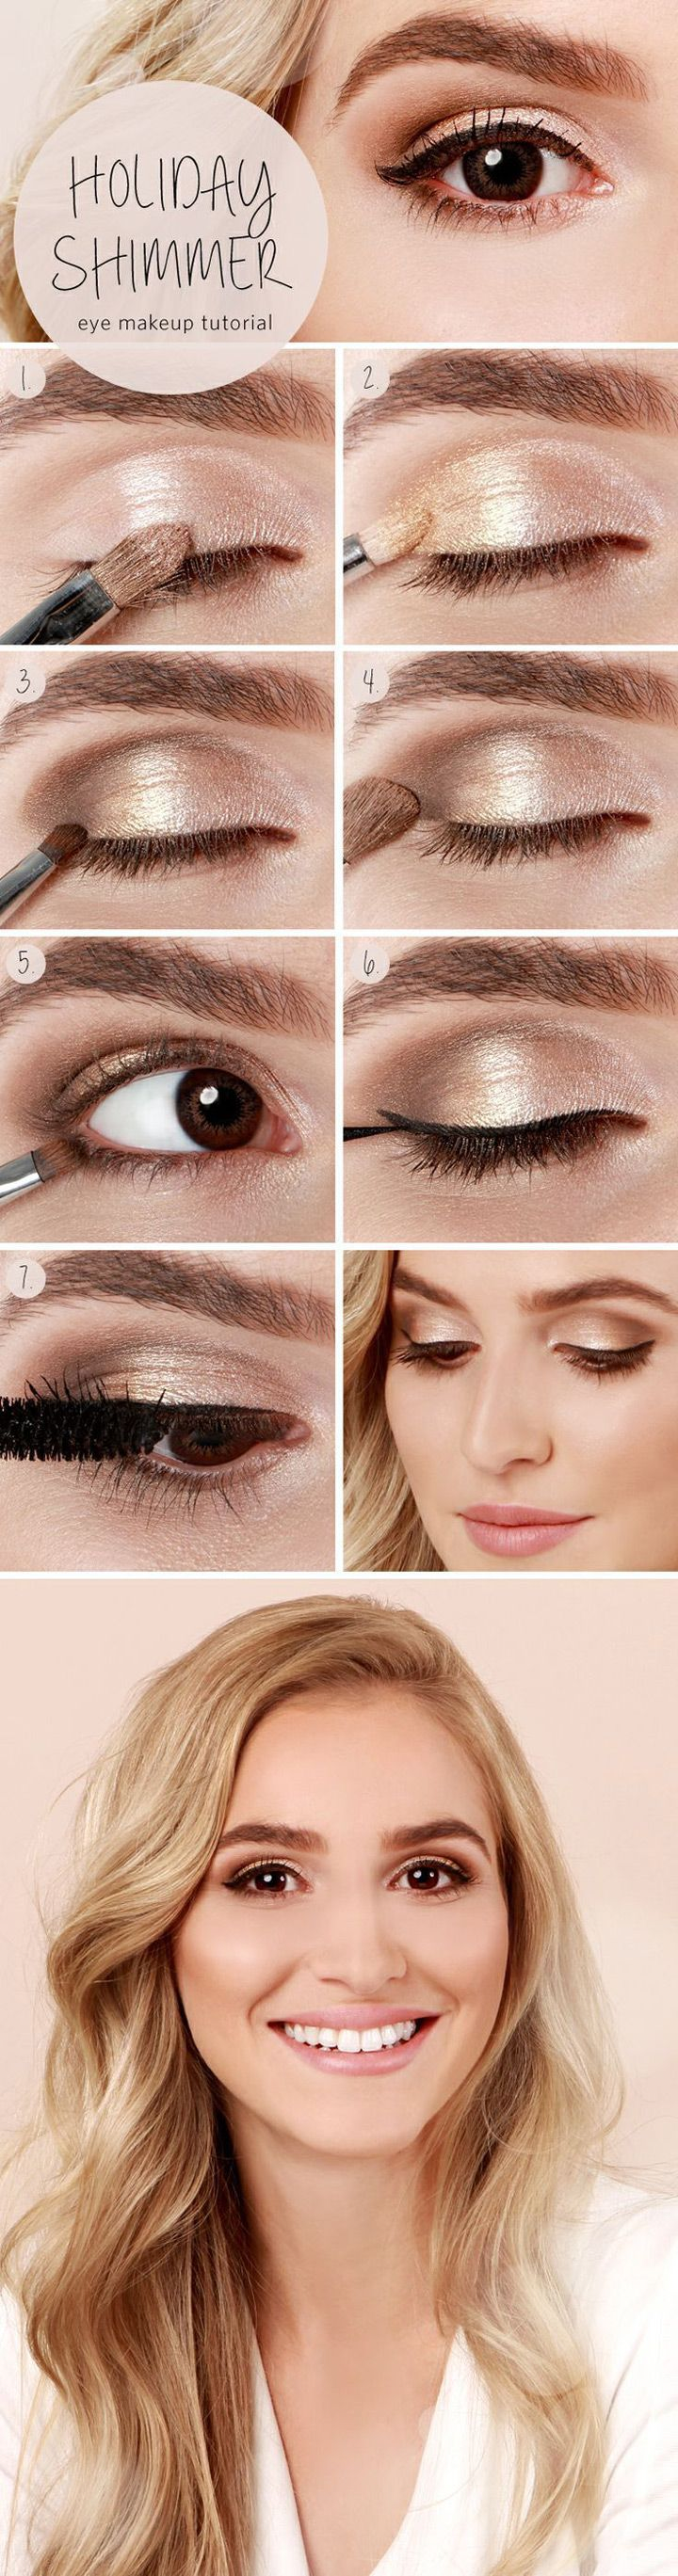 Nothing says Christmas like gold glitter! If you have a Christmas party coming up, why not try out this gorgeous shimmer make-up look.